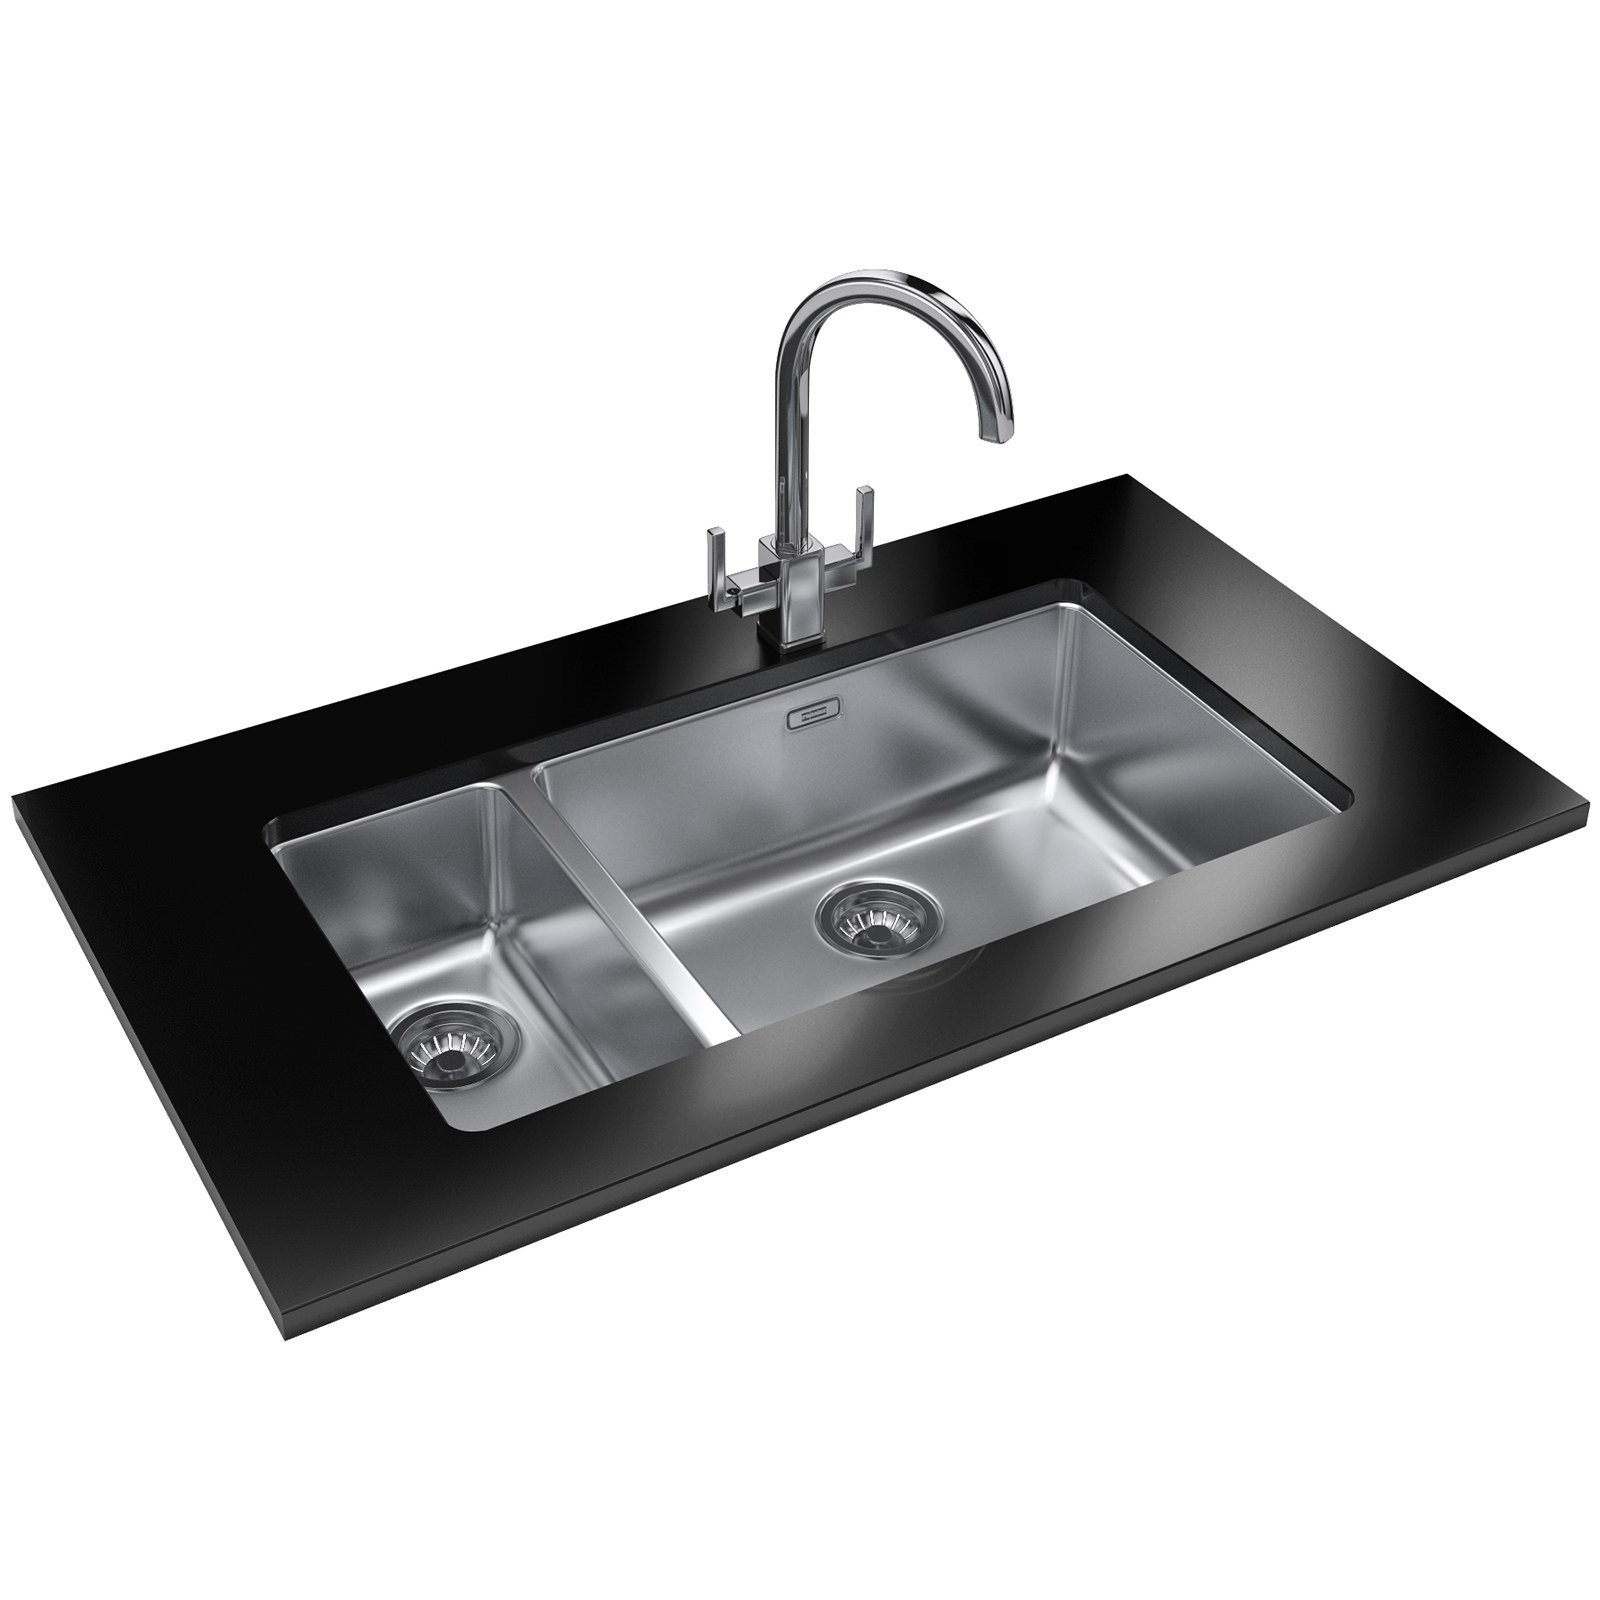 ... of Franke Kubus KBX 160 55-20 Stainless Steel 1.5 Bowl Undermount Sink